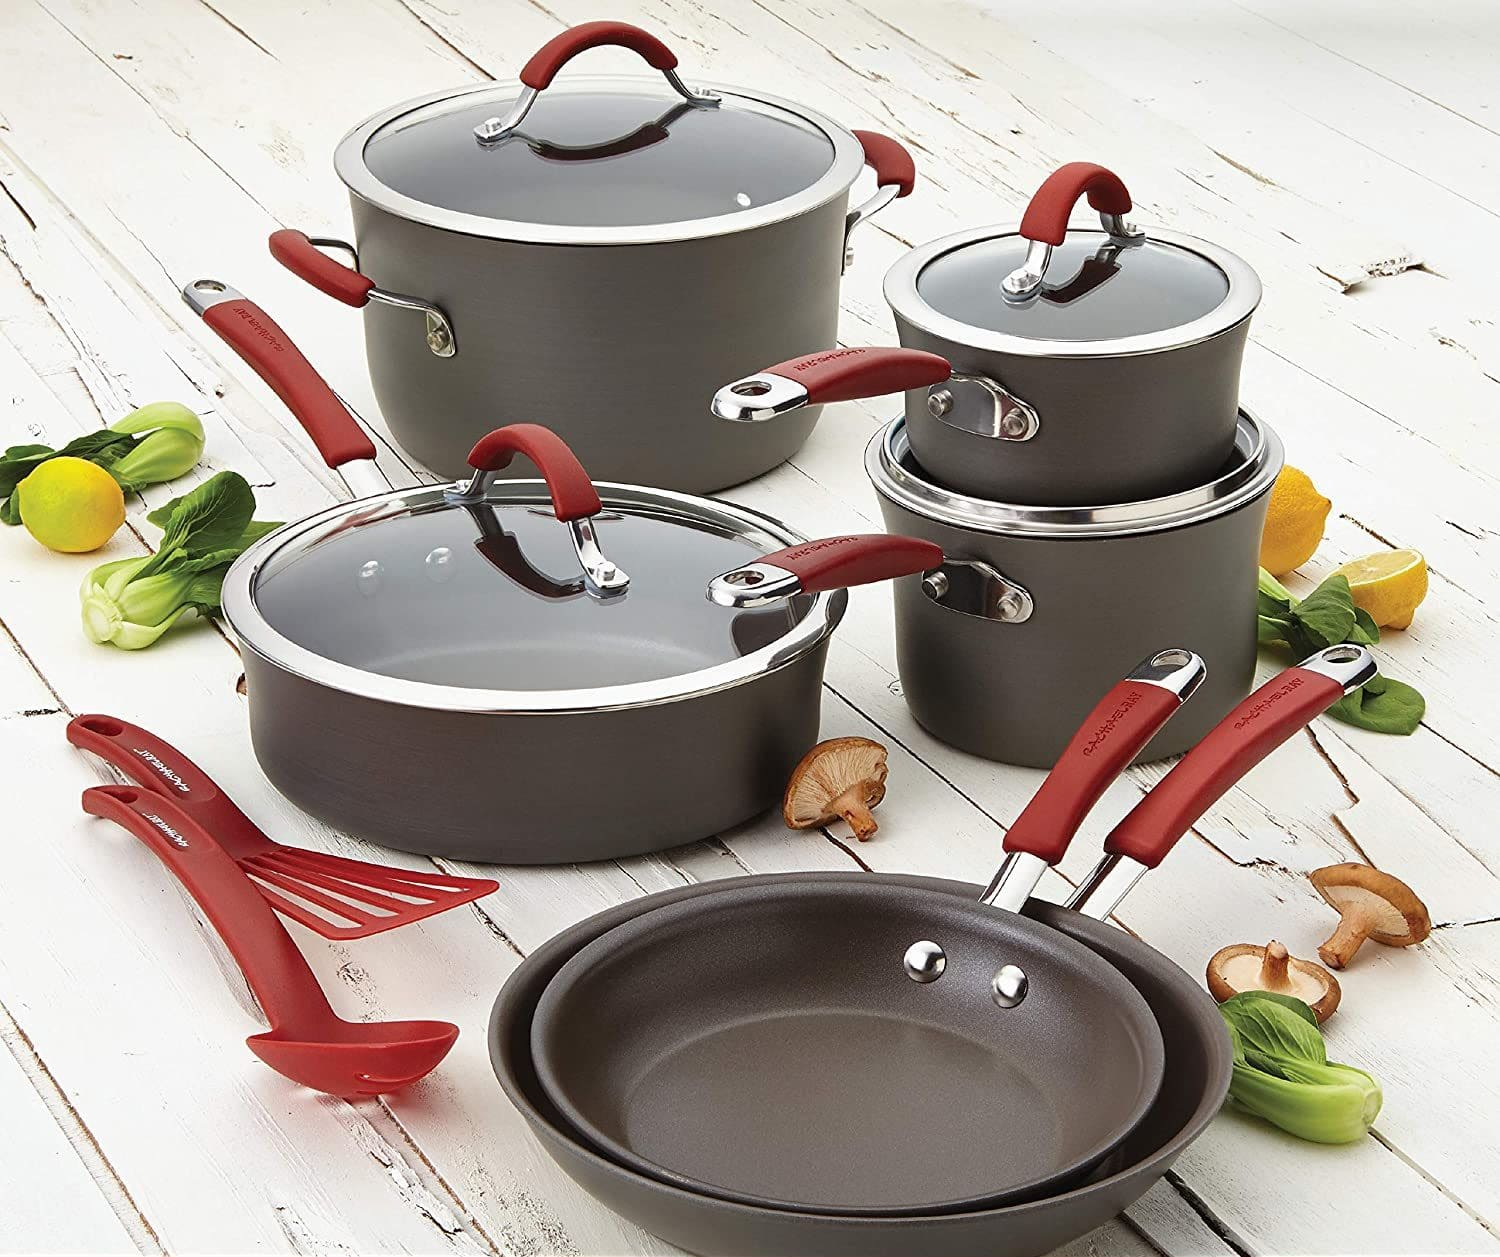 Hard-Anodized Cookware